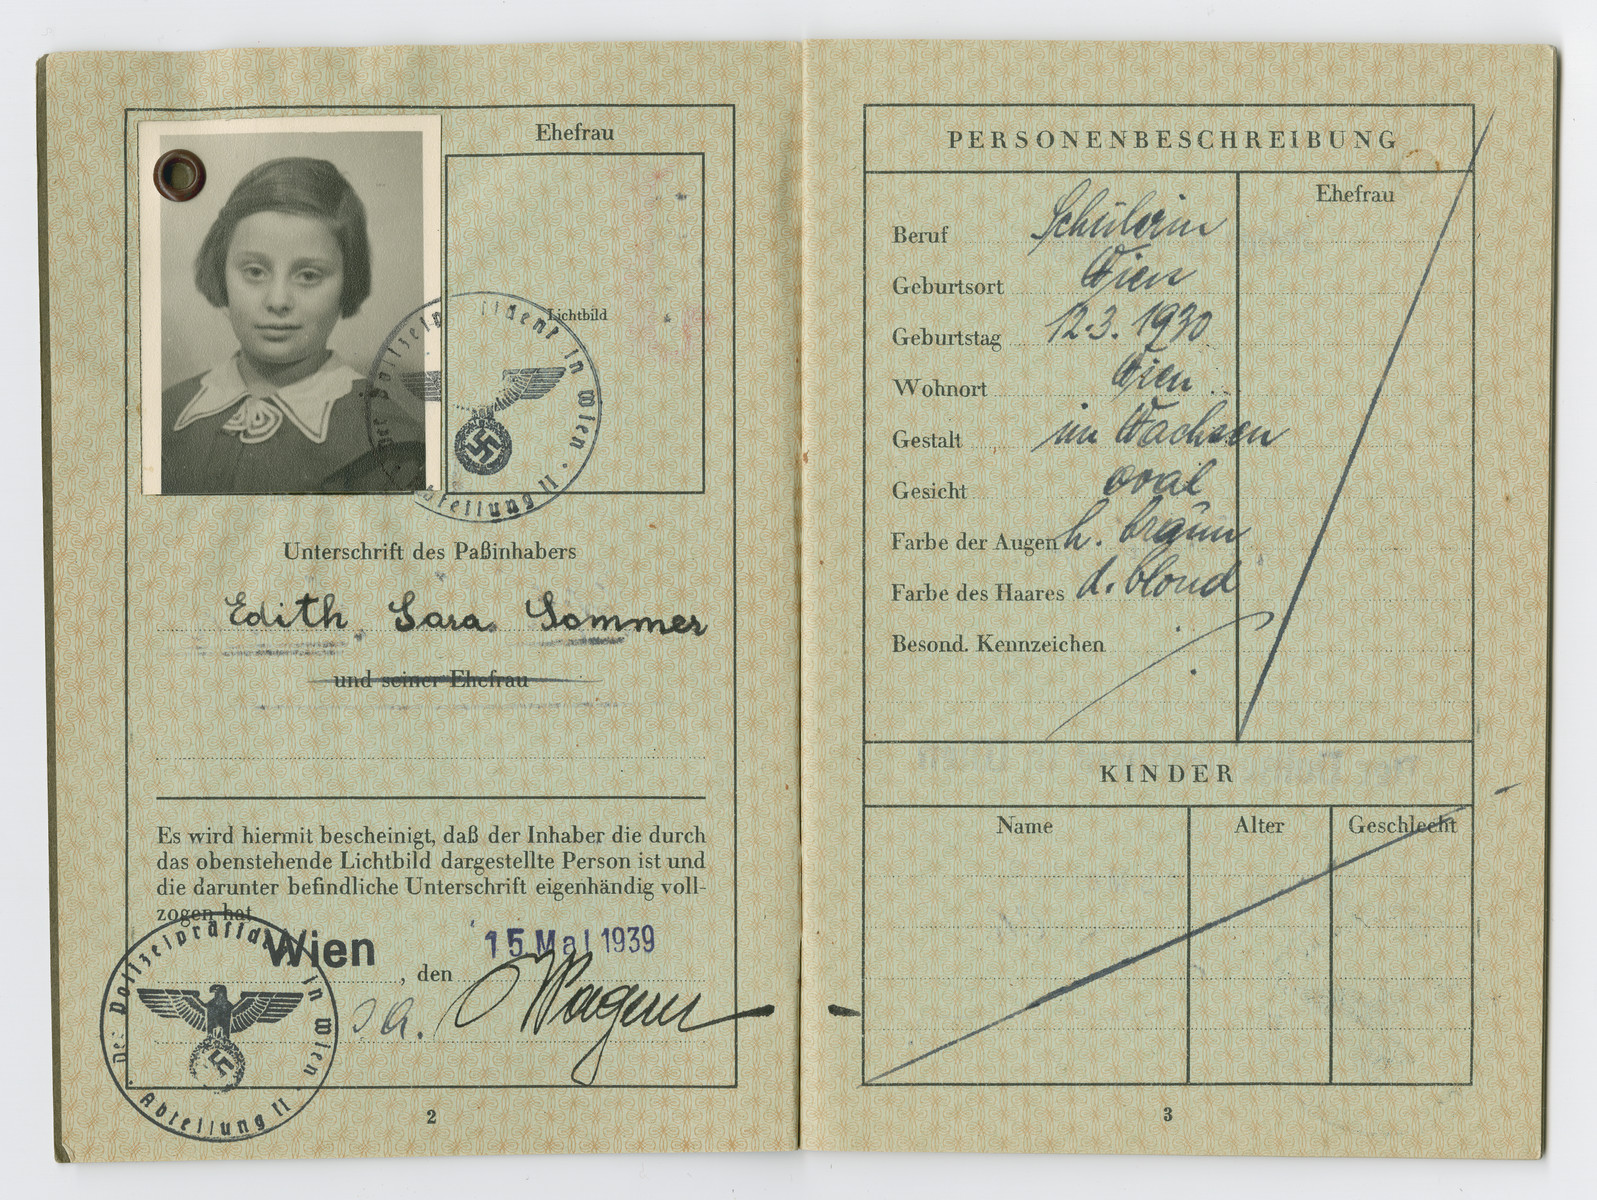 Identification papers issued to Edith Sara Sommers stating she was born in Vienna on March 12, 1930.  Sara was not her real middle name, but on August 17, 1938 Nazi officials ordered that all Jewish men assume the middle name Israel, and all Jewish women take the middle name Sara